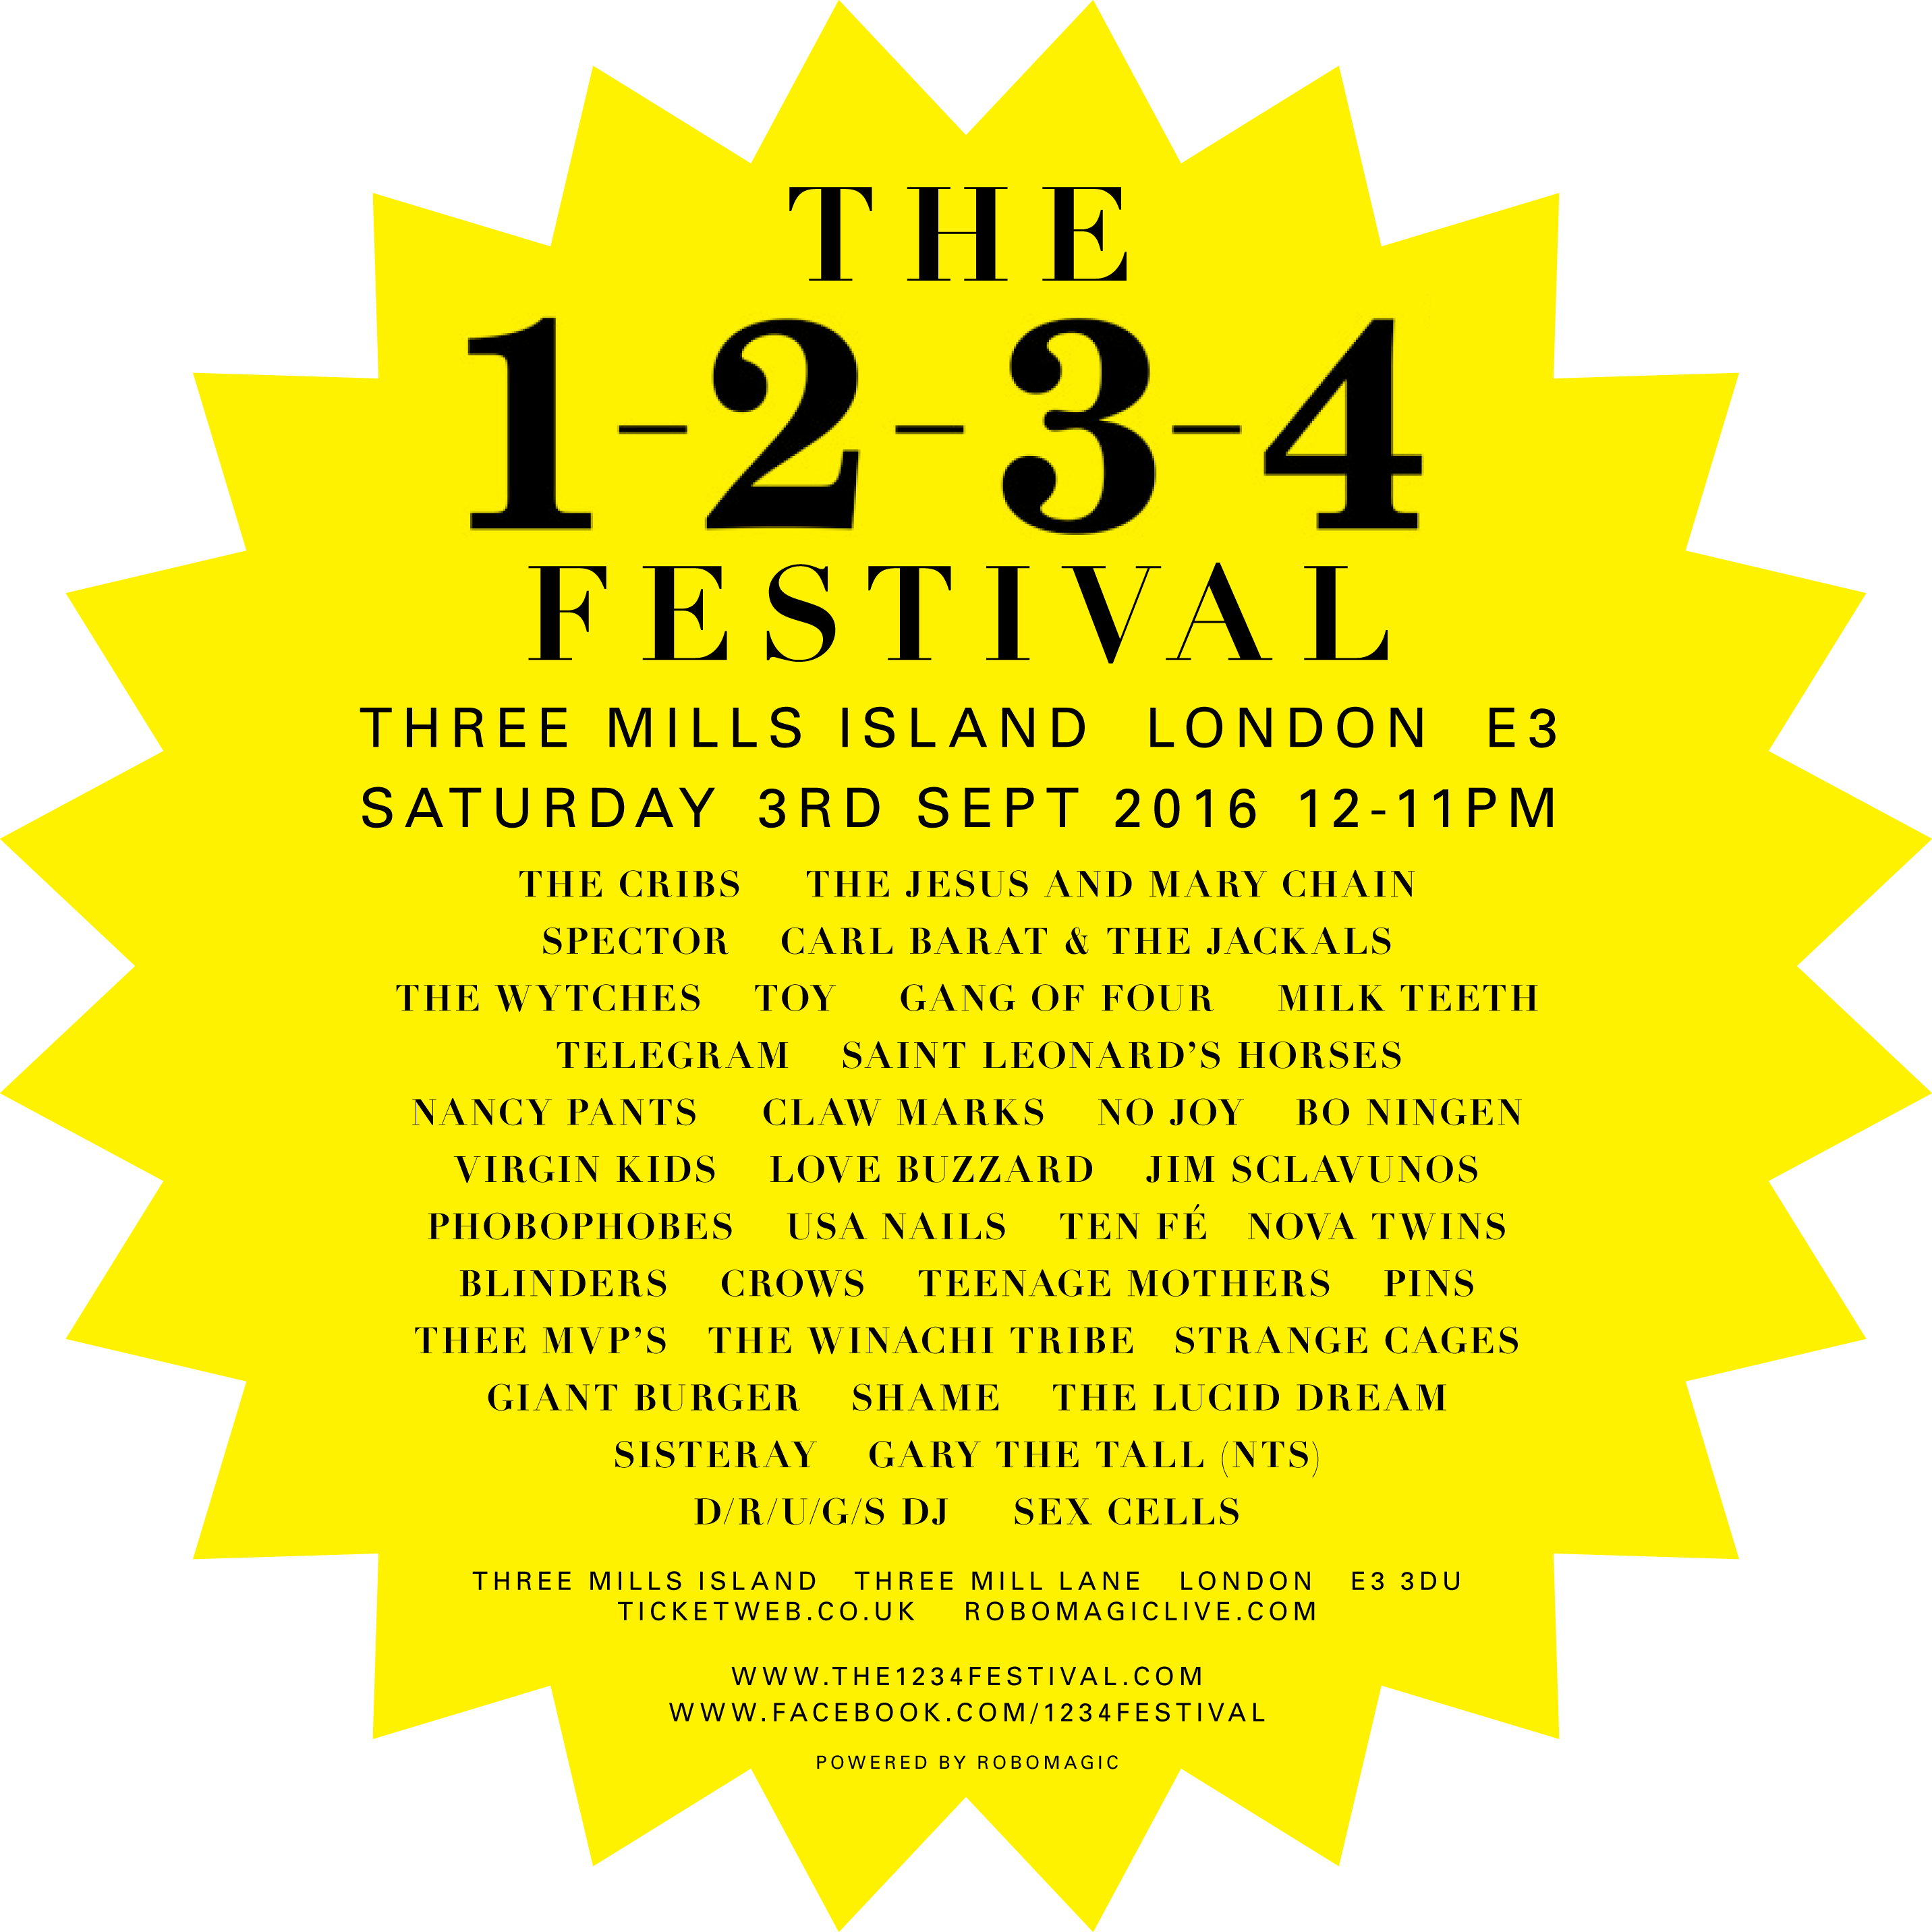 The 1234 Festival!